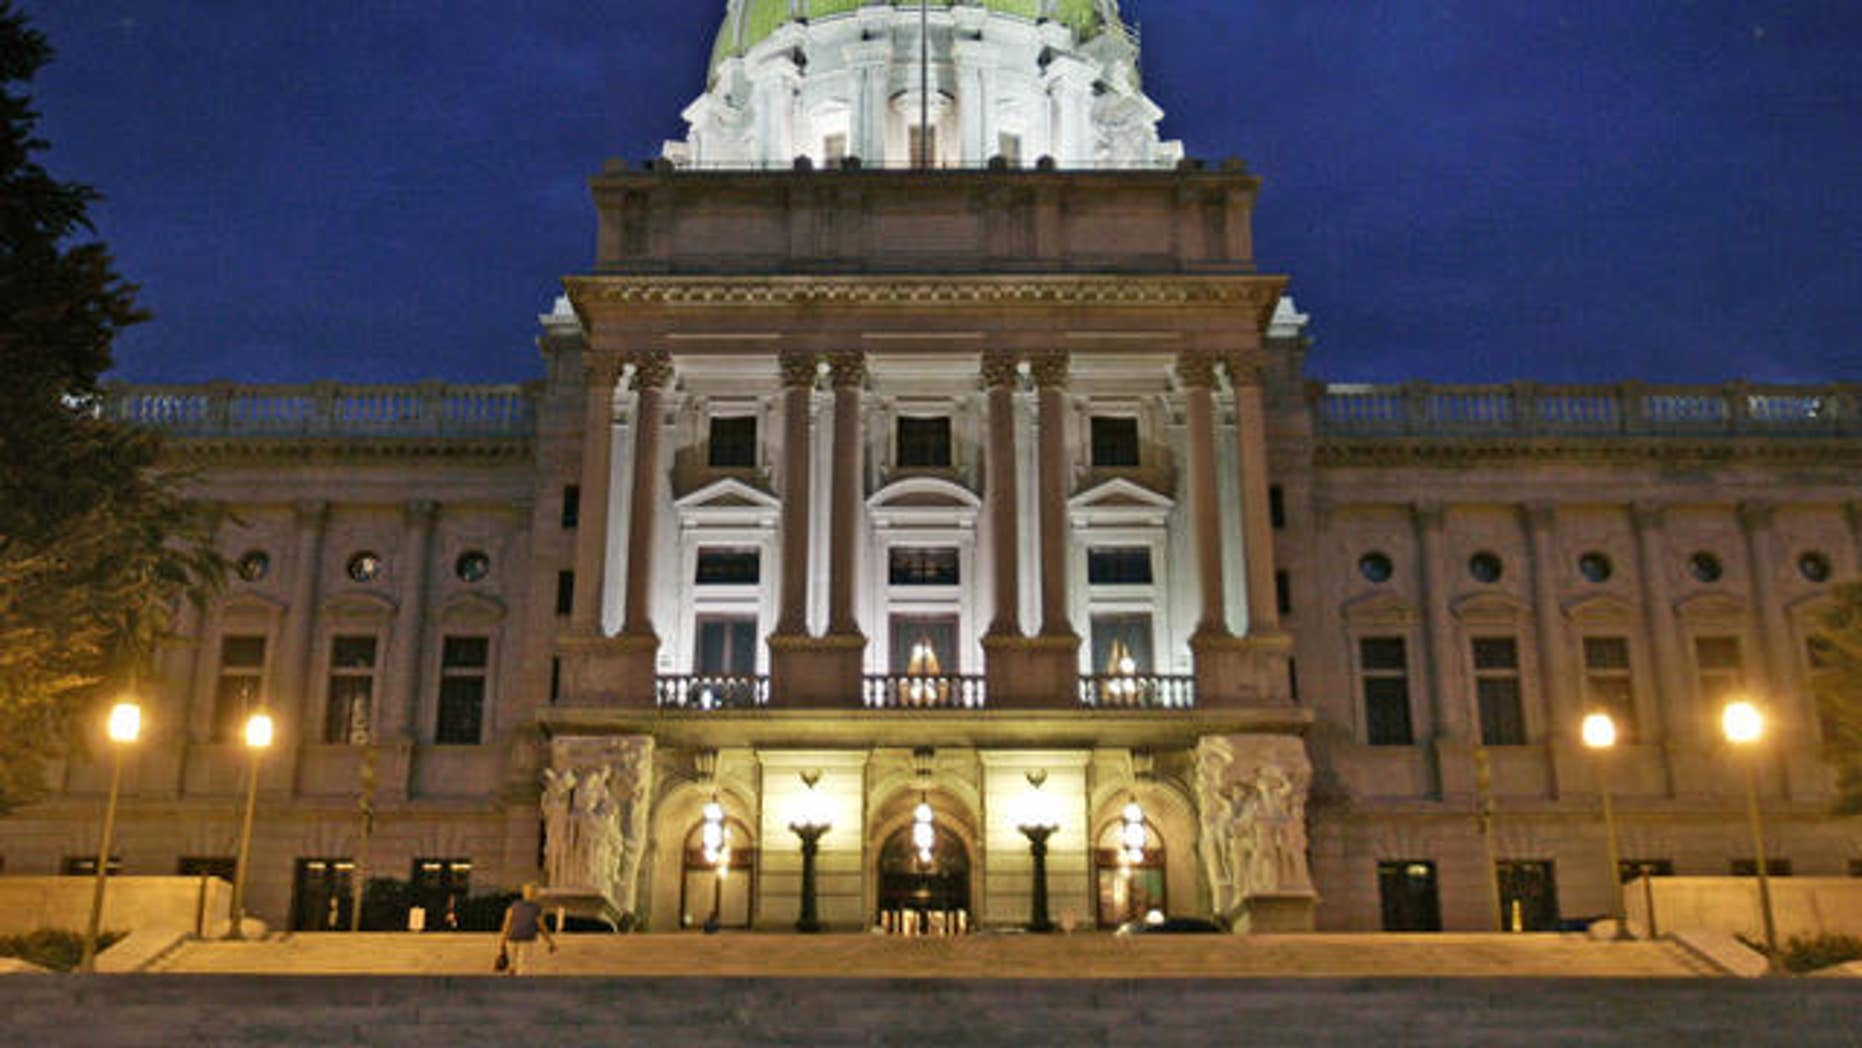 Newly-empowered Pennsylvania Republicans want to eliminate the state's winner-take-all vote tally in a change that Democrats fear would end their presidential winning streak in the Keystone State next year.